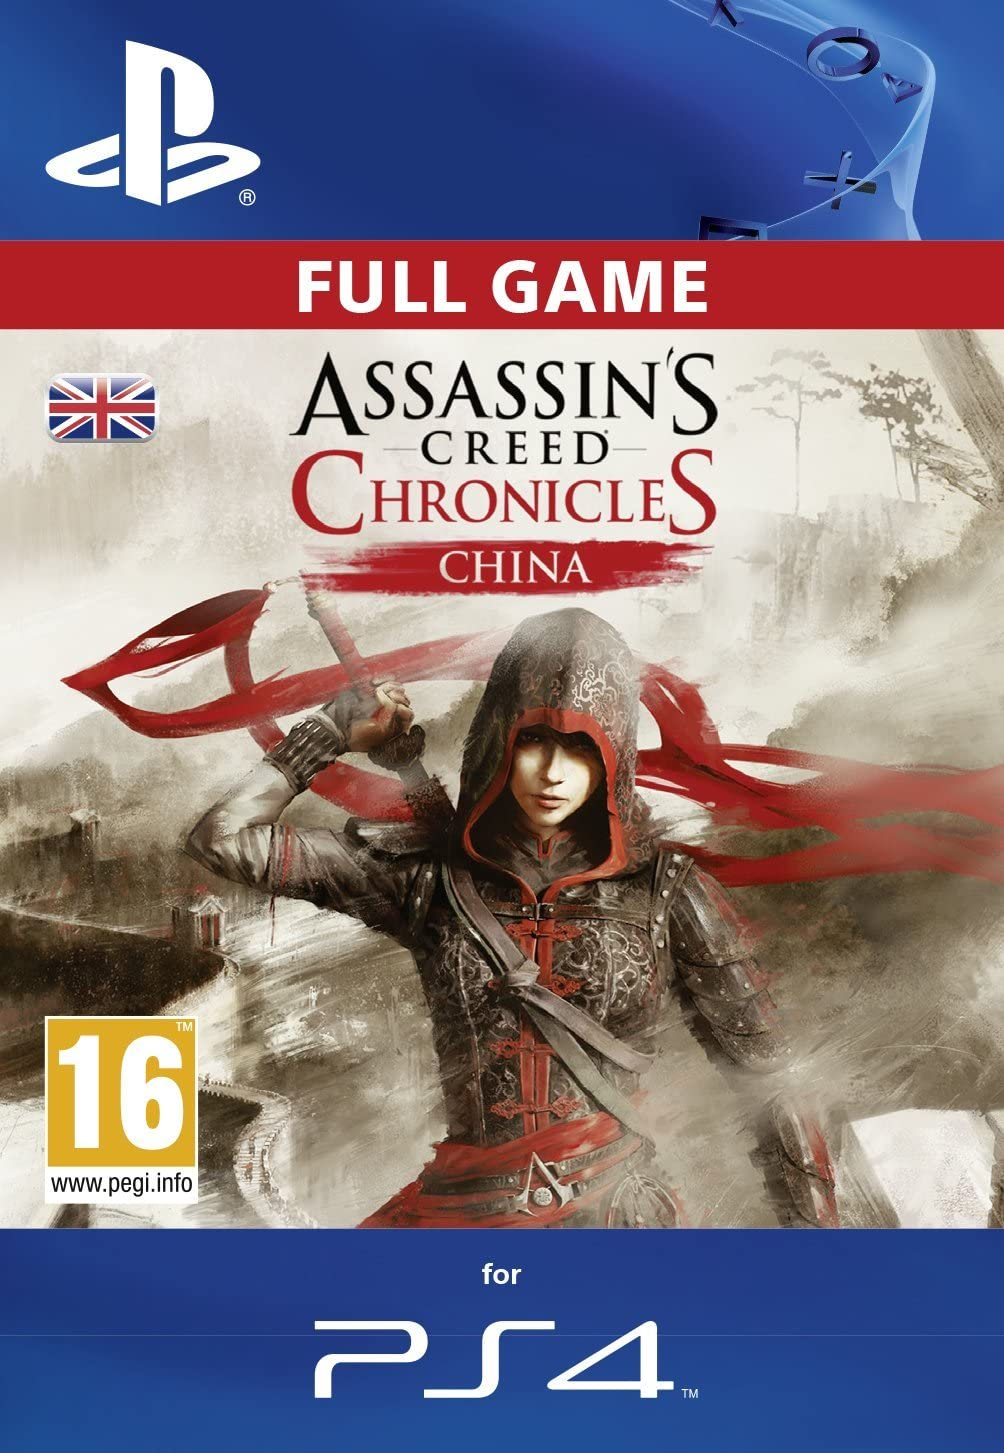 Assassin S Creed Chronicles China Dlc Ps4 Psn Code Uk Account Amazon Co Uk Pc Video Games